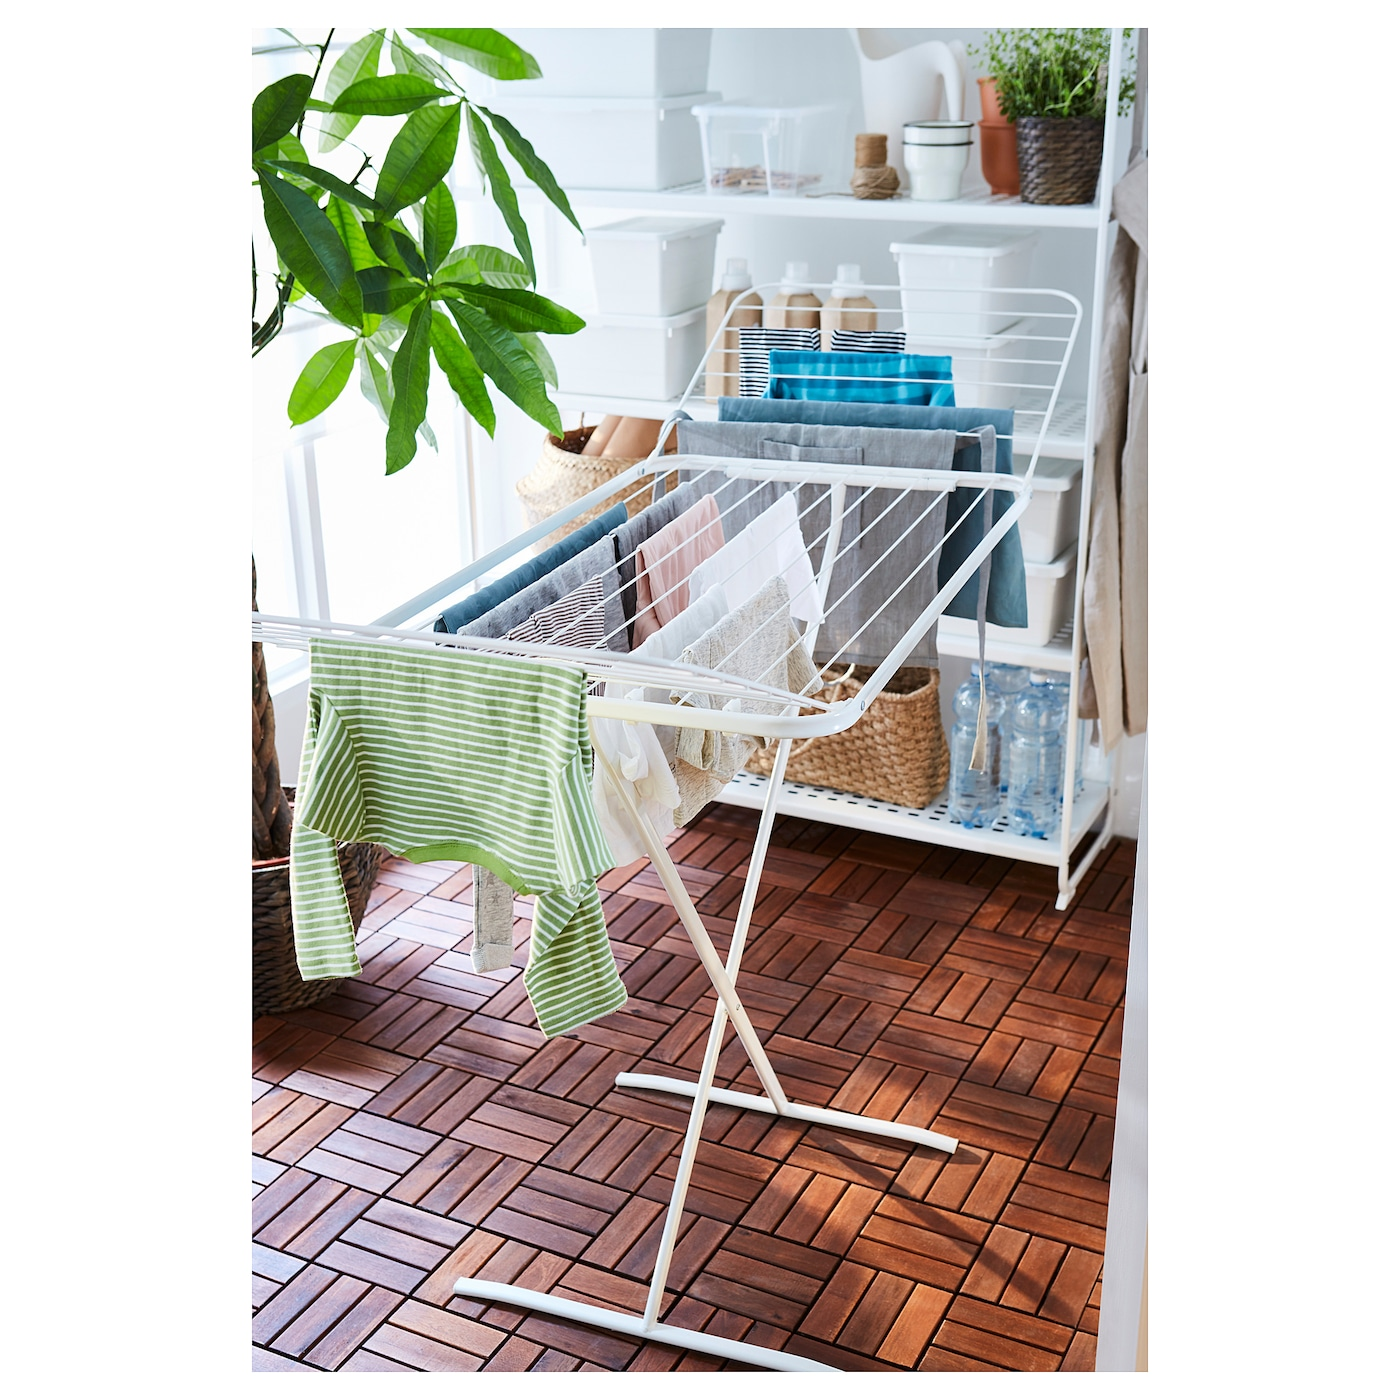 Ikea Mulig Drying Rack In Outdoor Suitable For Both Indoor And Use